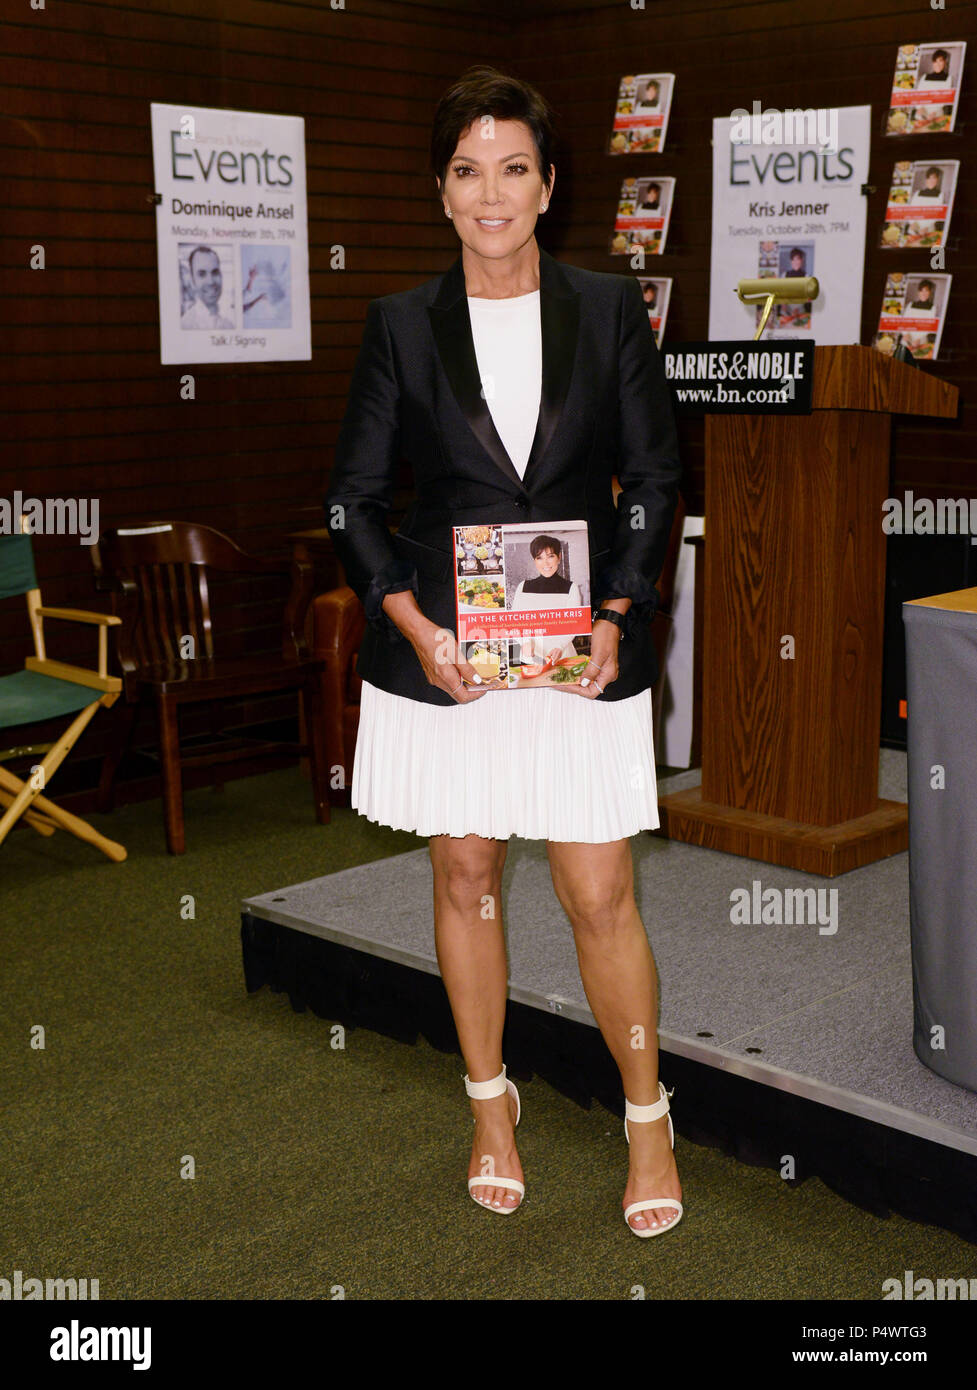 Kris Jenner Book Signing At The Barnes And Noble At The Grove In Los